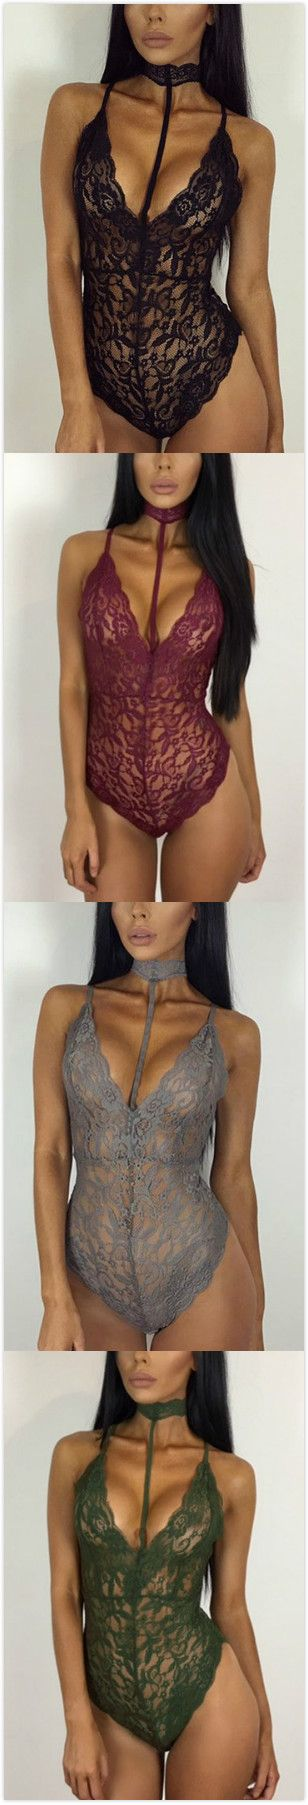 Halter Neck Strappy Lace Bodysuit http://bellanblue.com